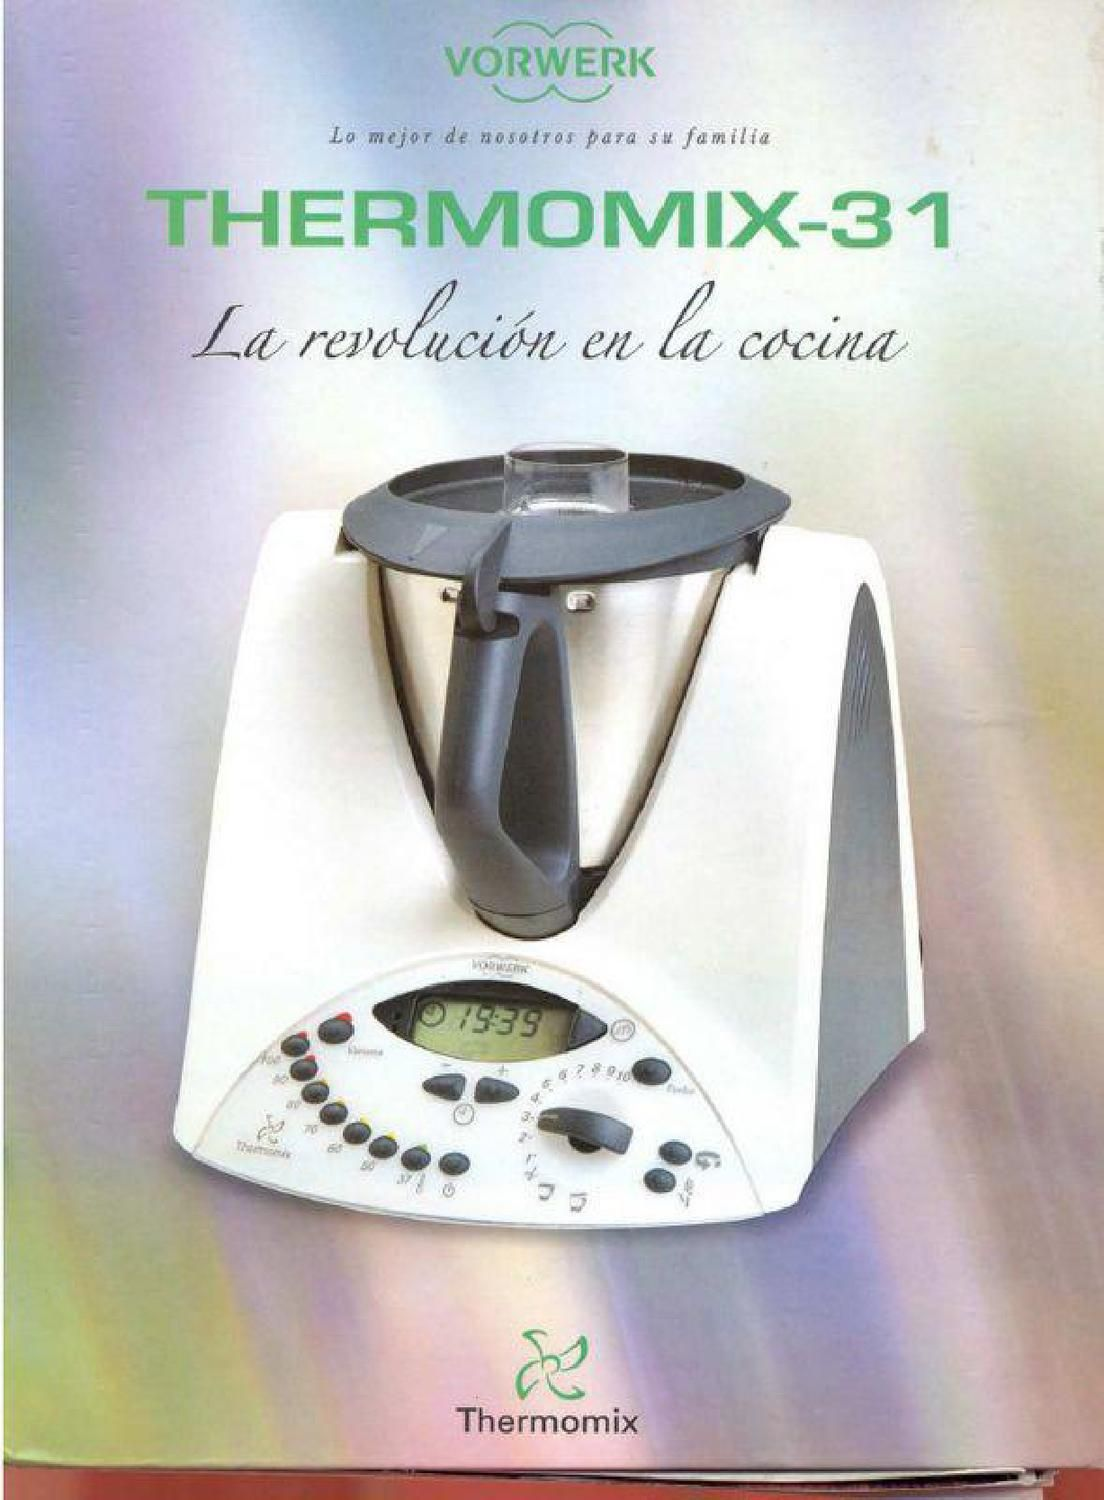 how to cook quinoa thermomix